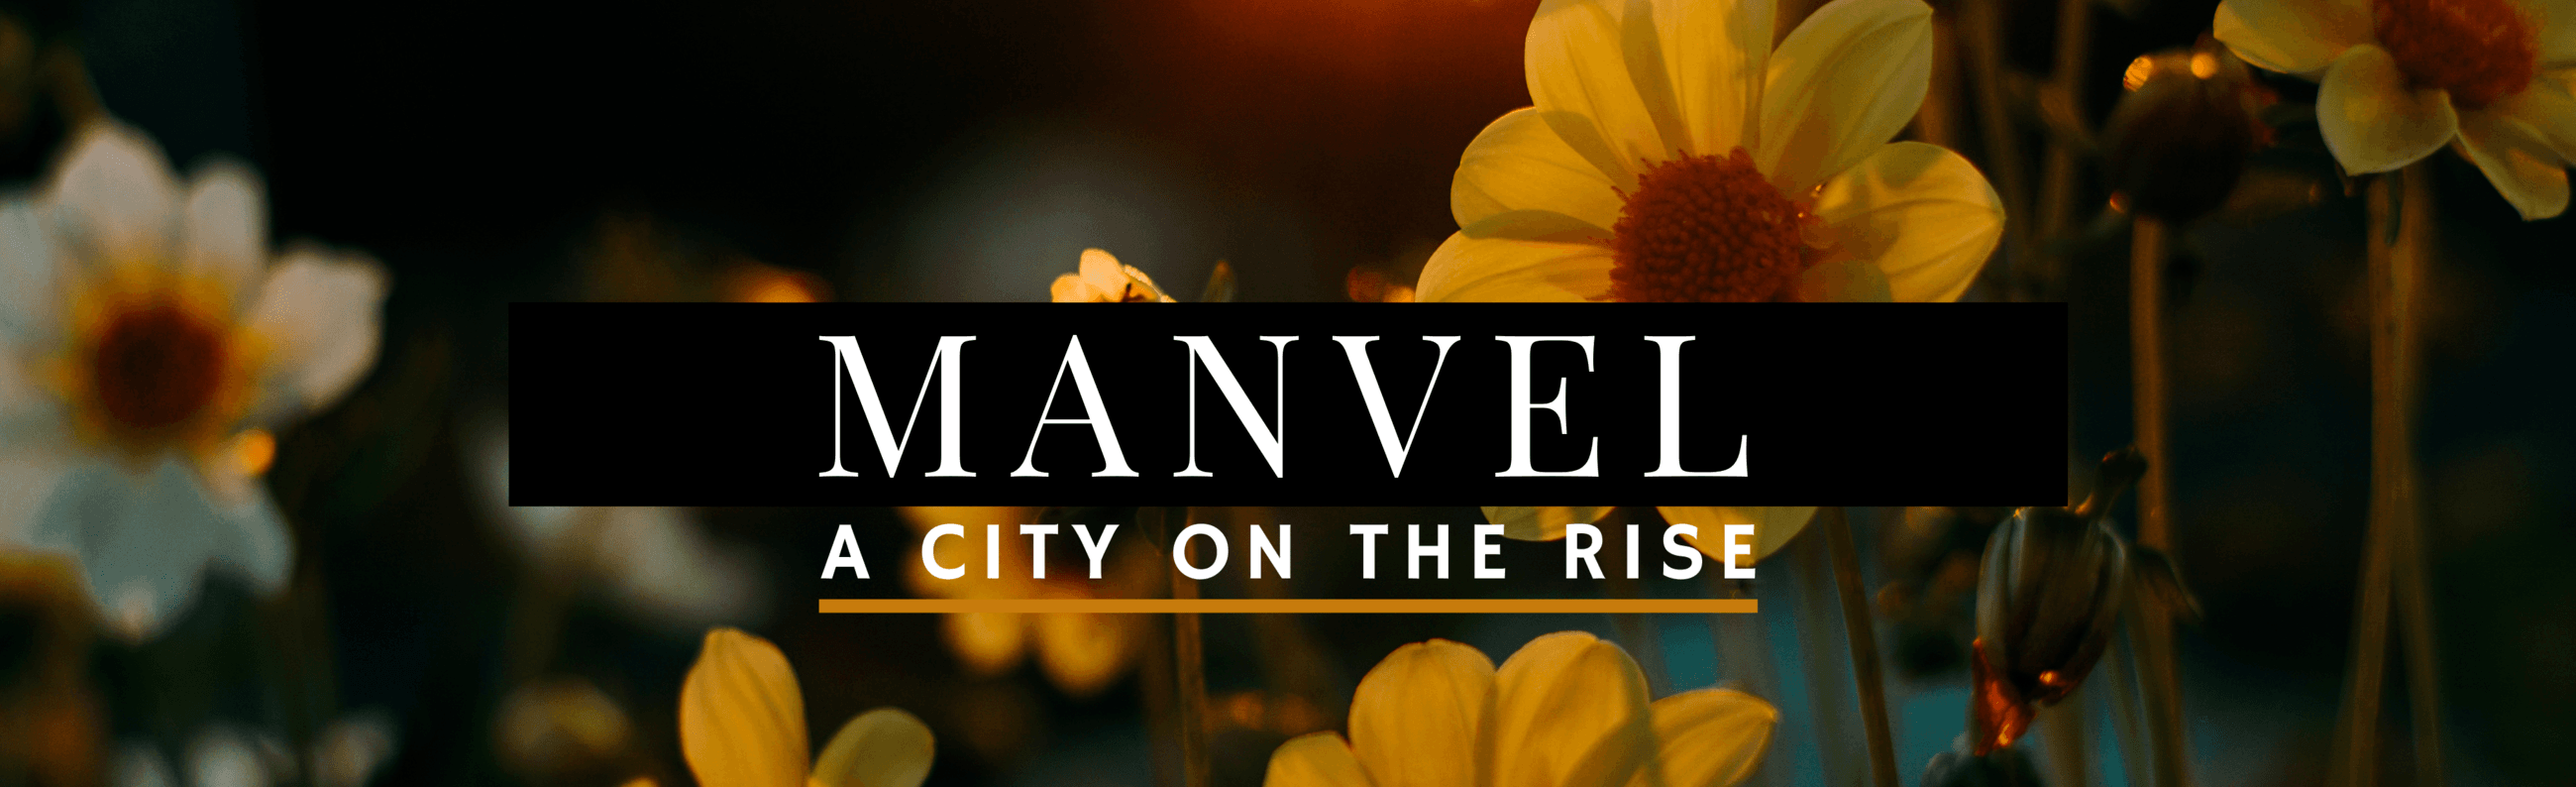 Manvel City on the Rise